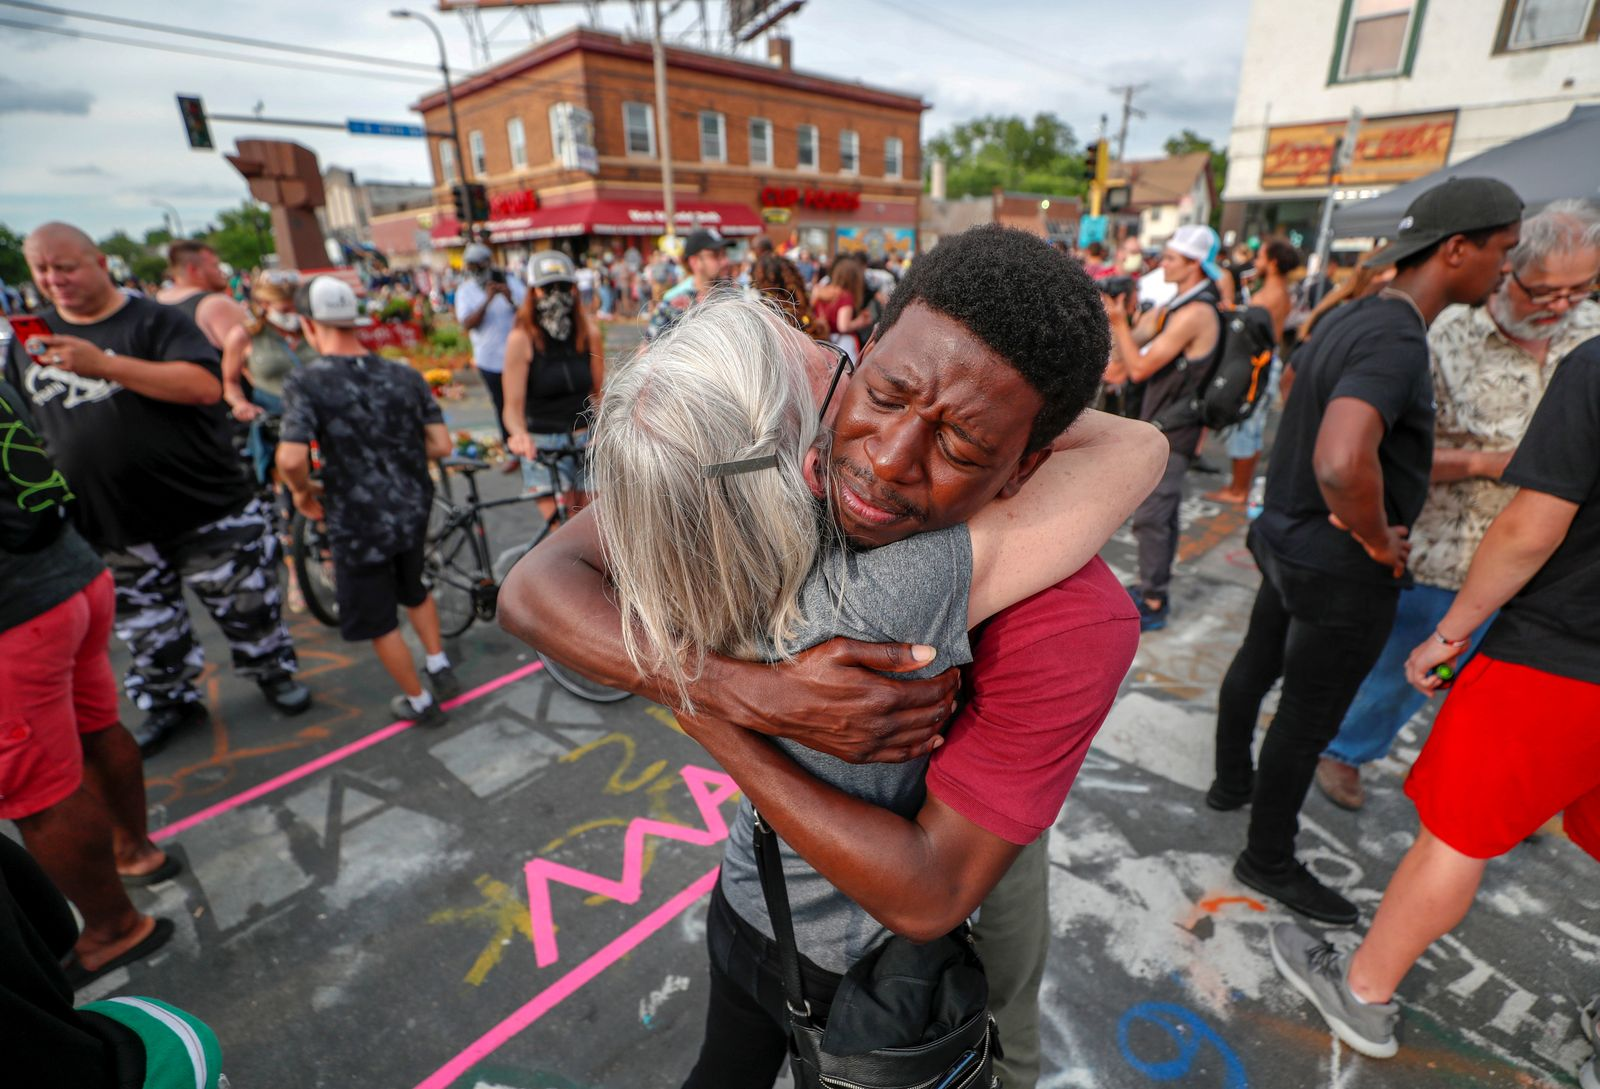 People hug during a Juneteenth observation in Minneapolis